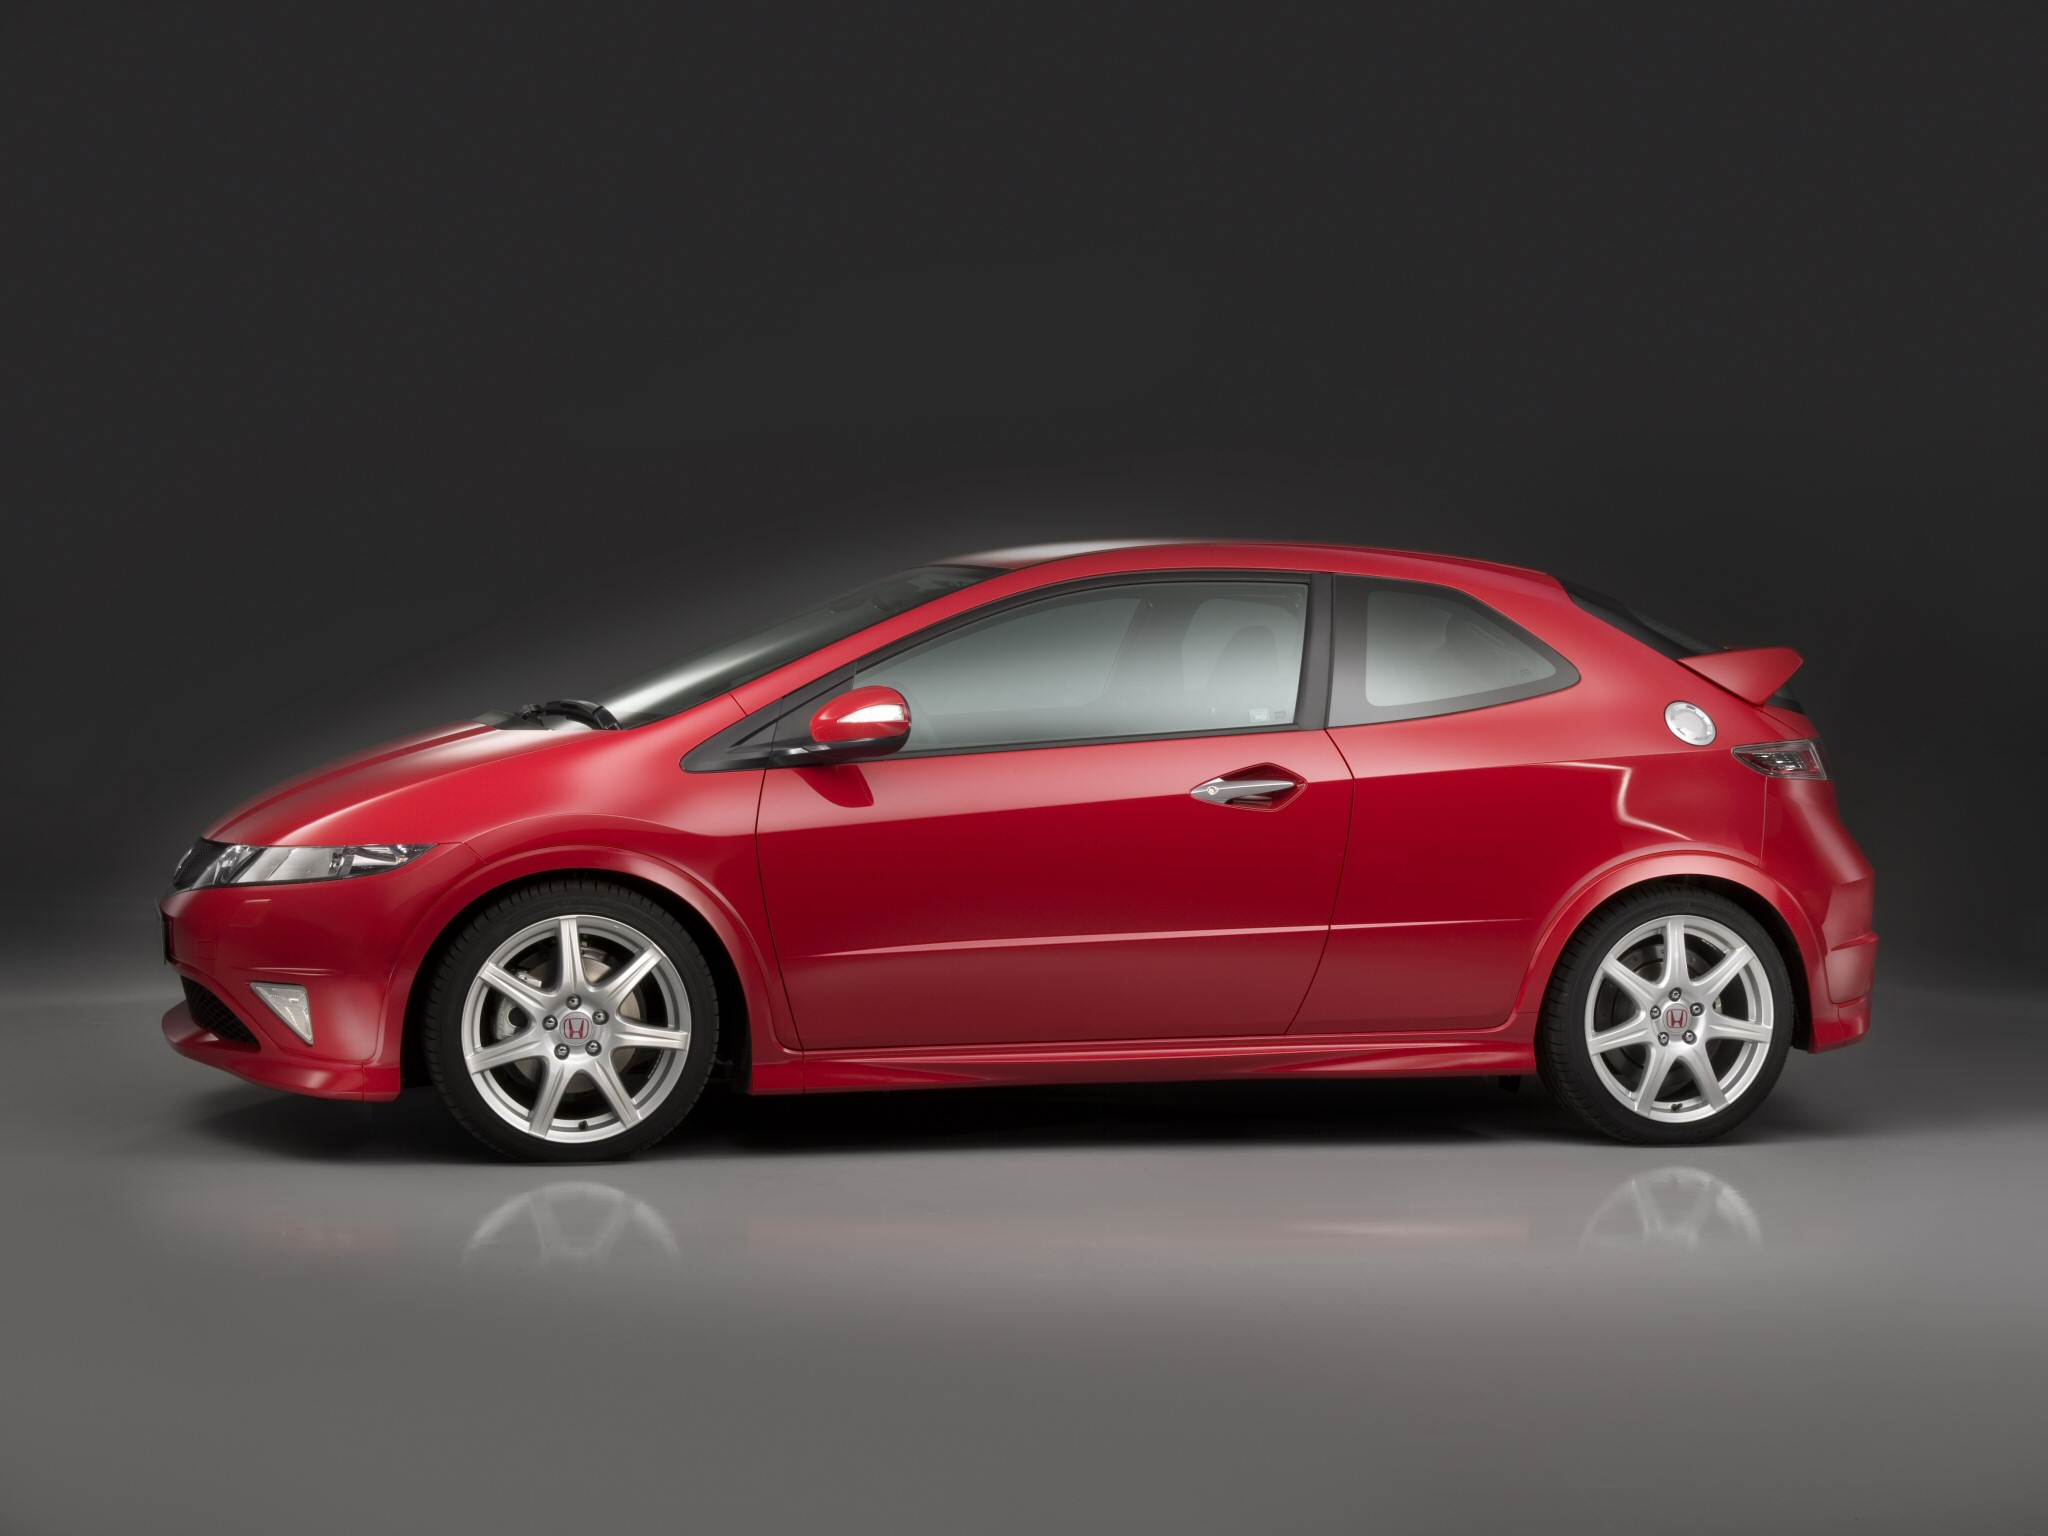 honda civic type r 2006 honda civic type r 2006 photo 03 car in pictures car photo gallery. Black Bedroom Furniture Sets. Home Design Ideas